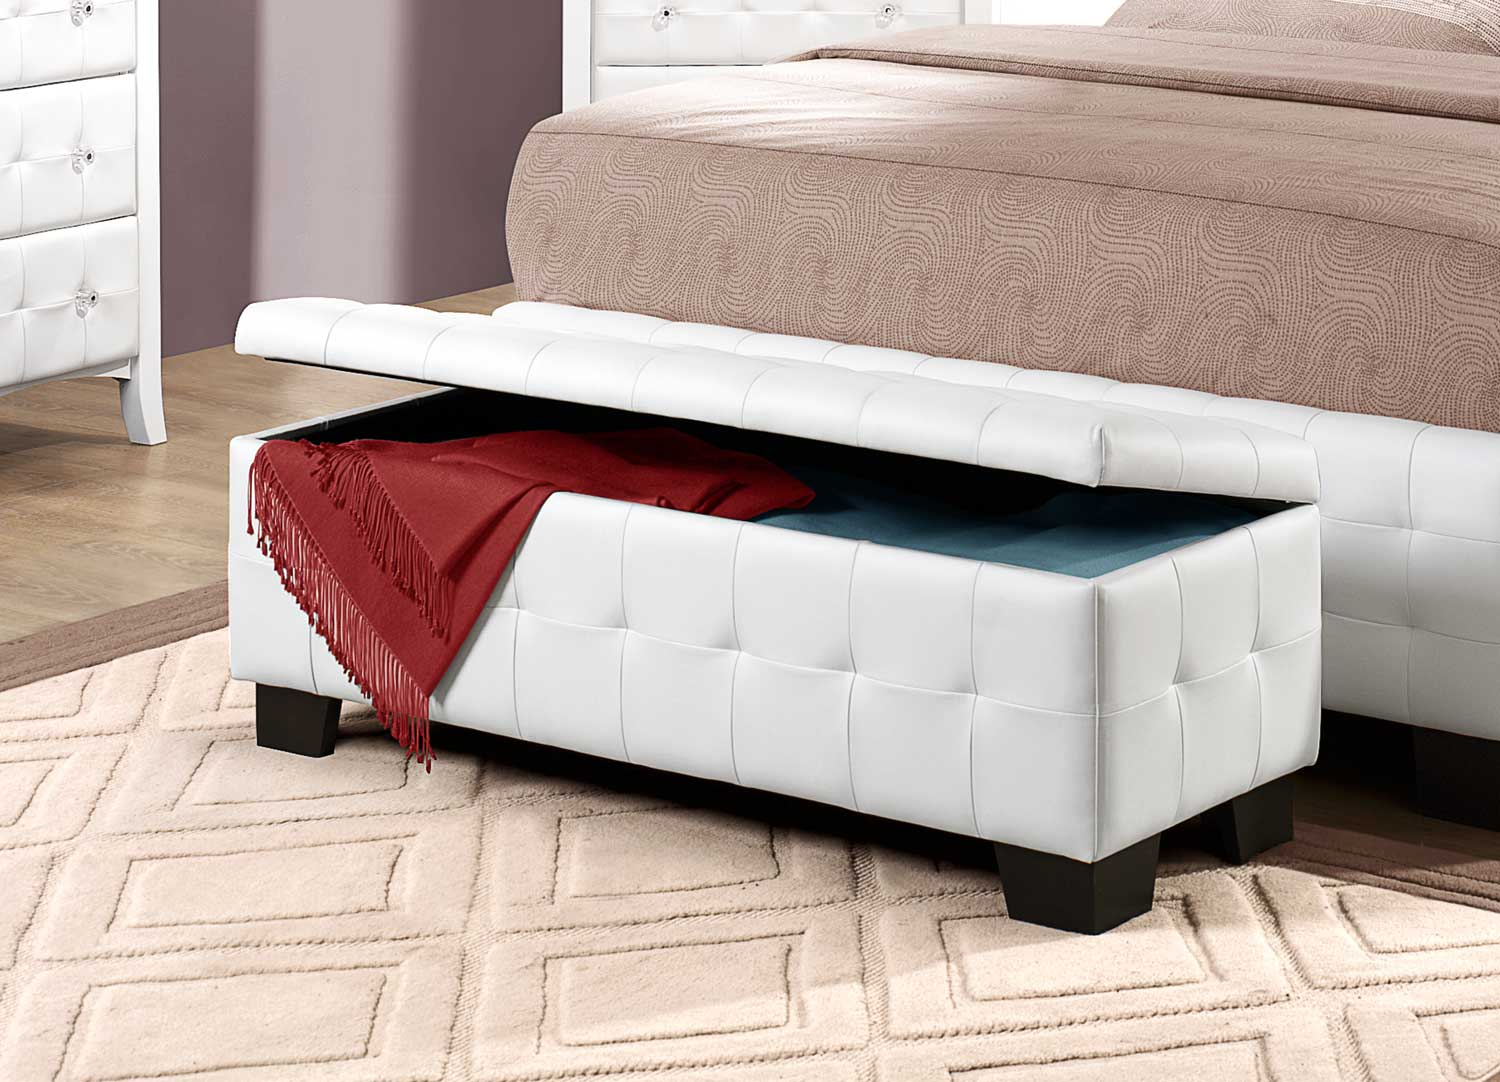 Bench By Bed: Upholstered Bench With Storage